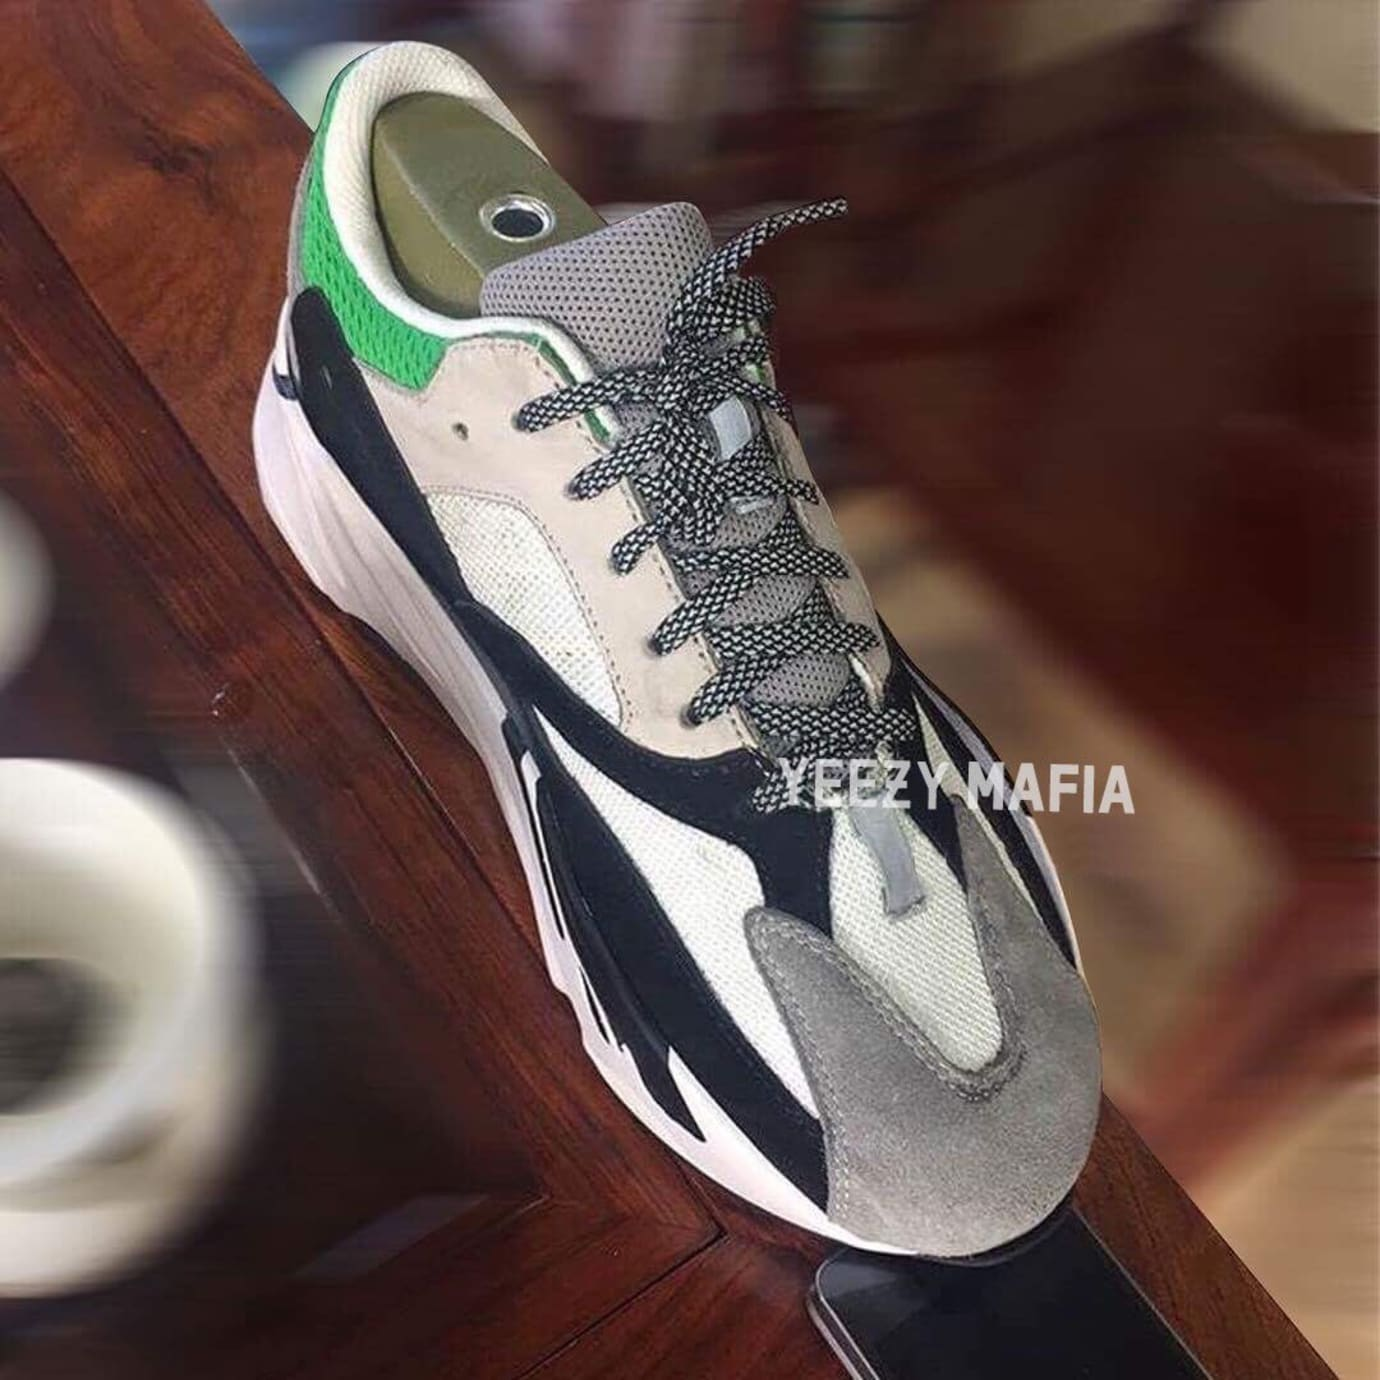 Adidas Yeezy Boost 700 Tan Green | Sole Collector